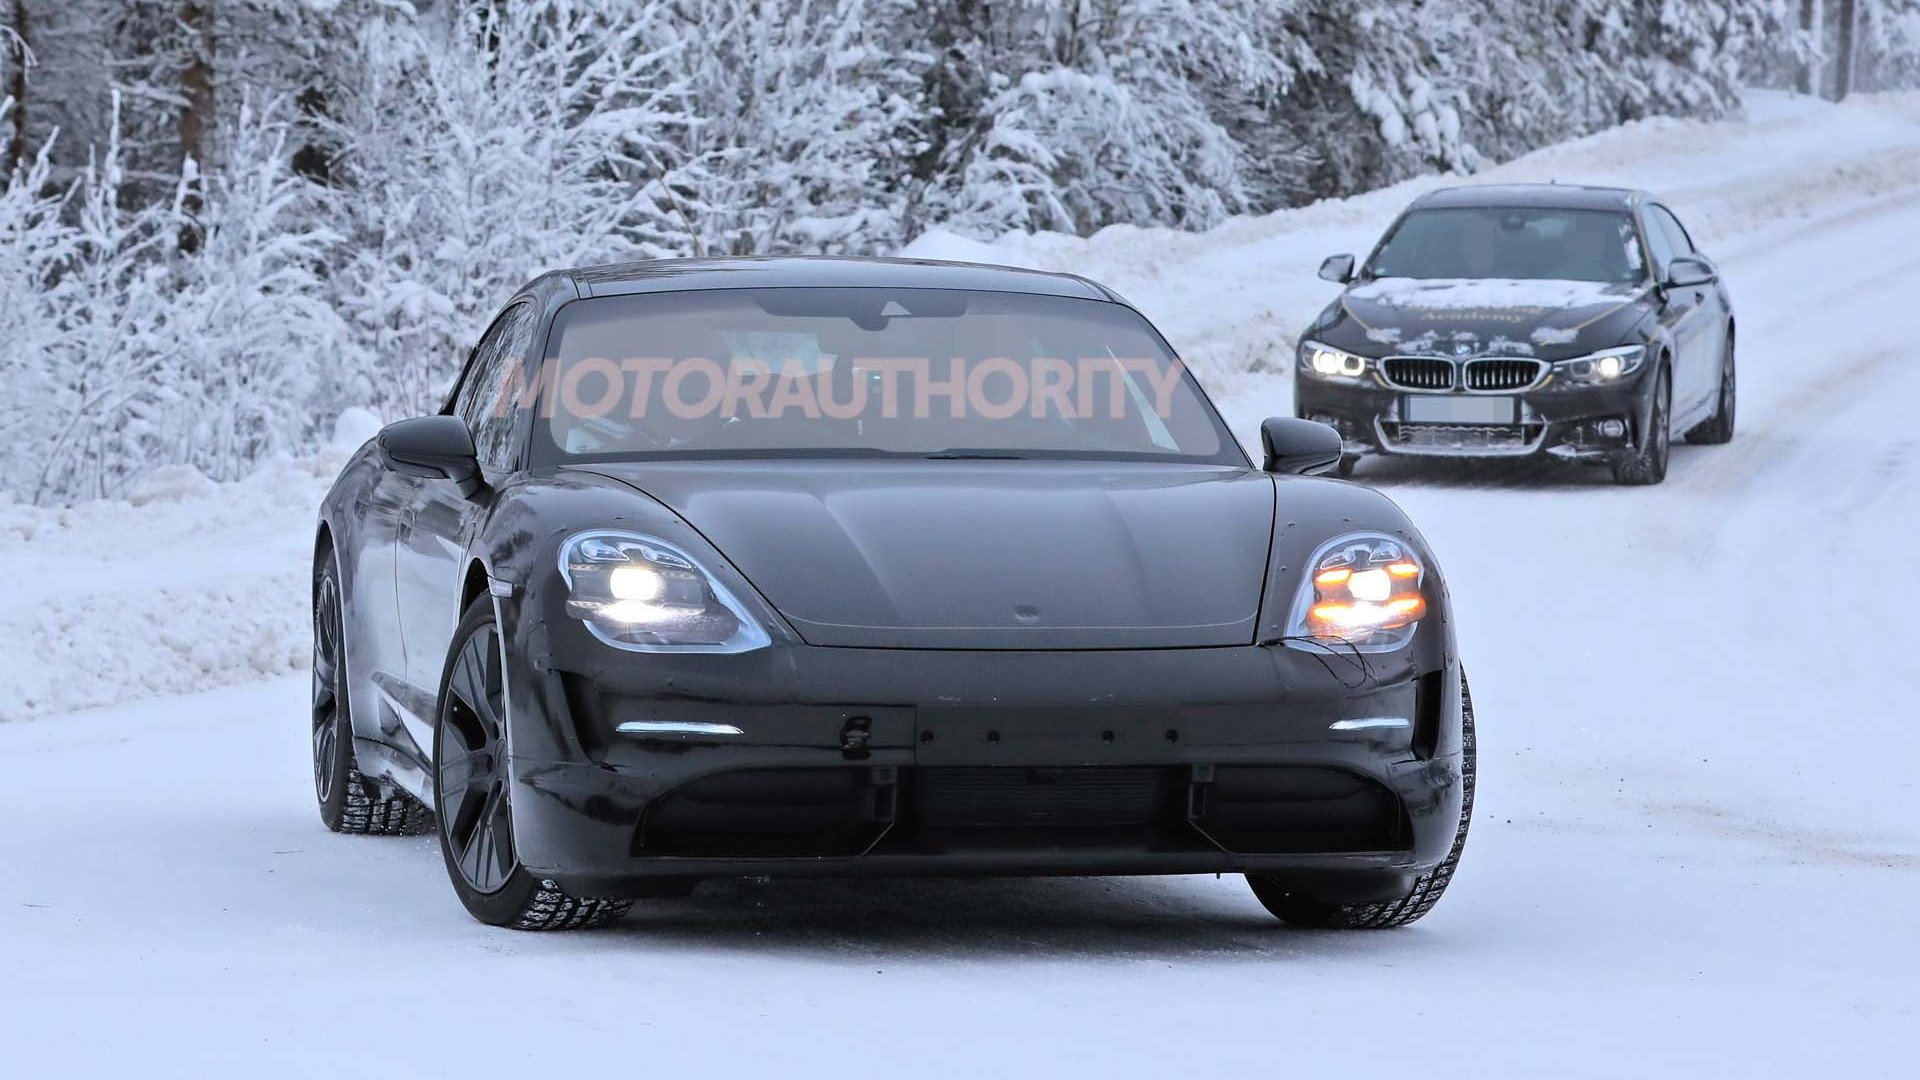 2020 Porsche Taycan Spy Shots And Video